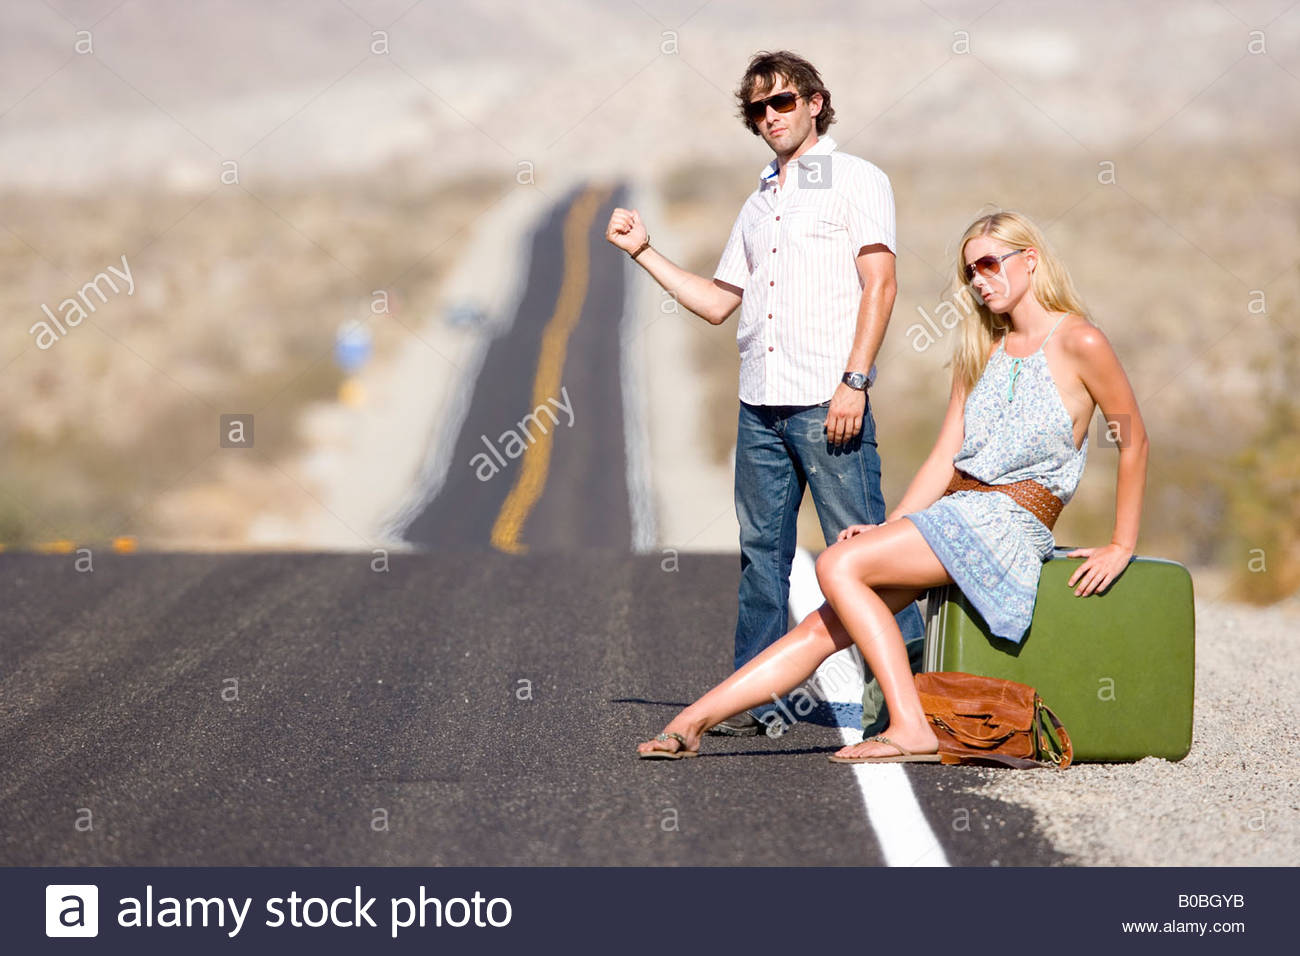 Hitchhikers By Side Of Road >> Hitchhiker Hitchhiking On Road Stock Photos Hitchhiker Hitchhiking